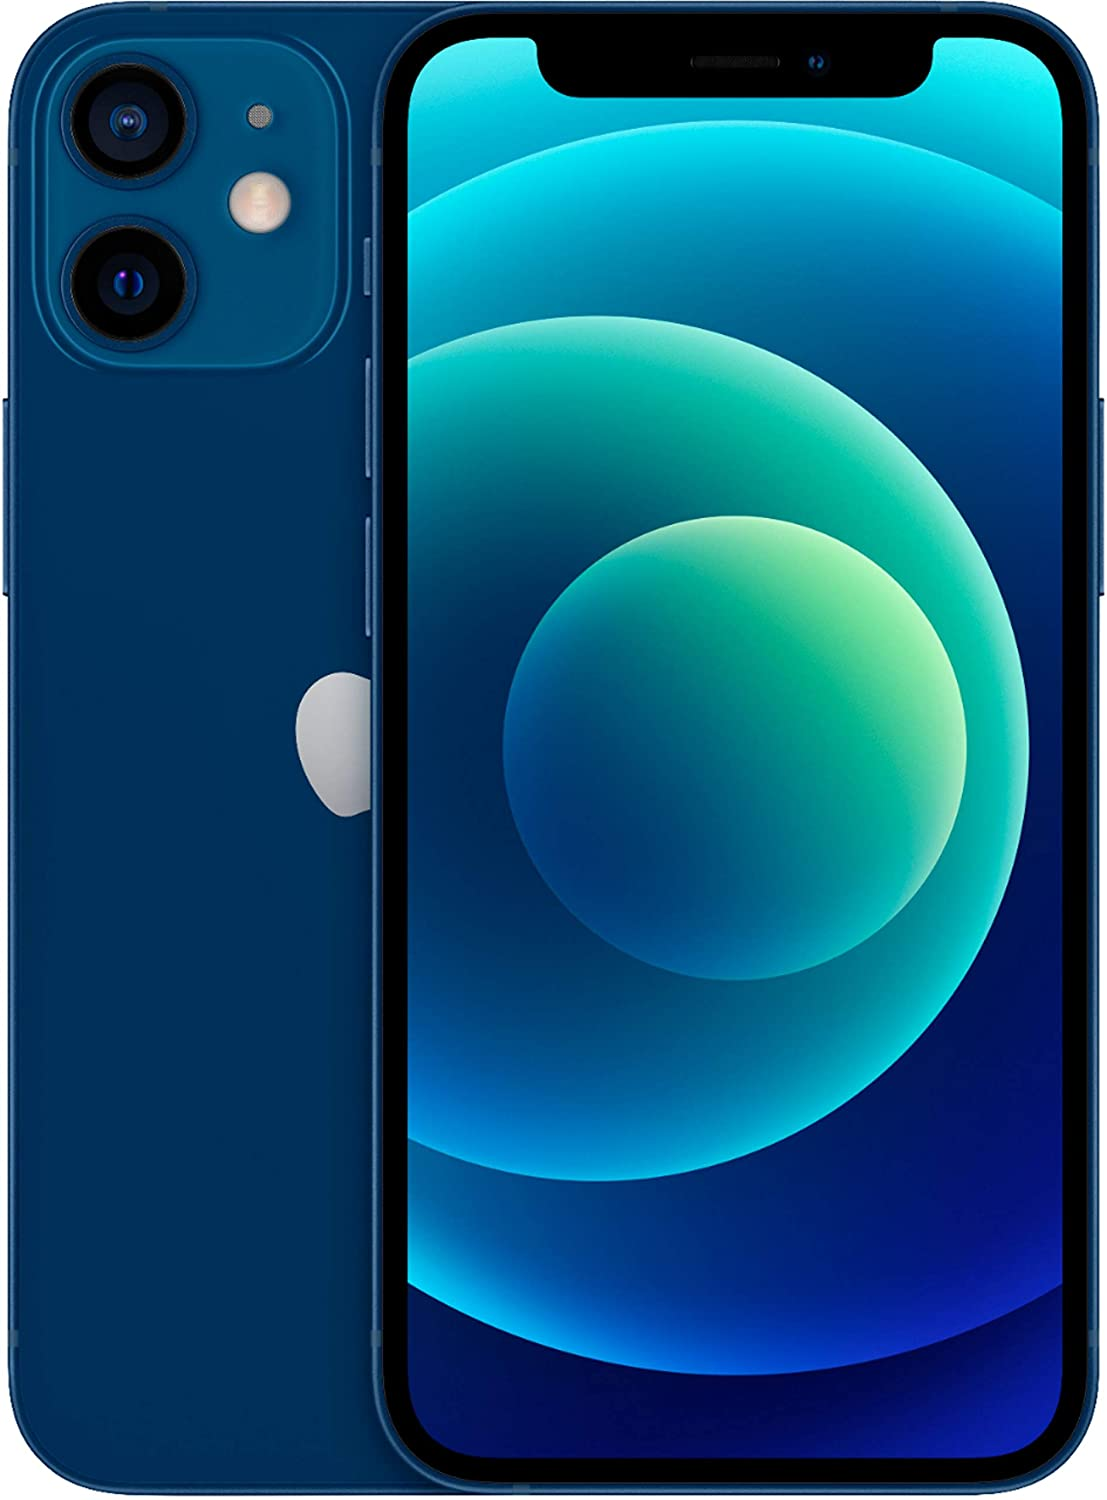 Best Phone for Streaming - Top 7 Best Products Reviewed